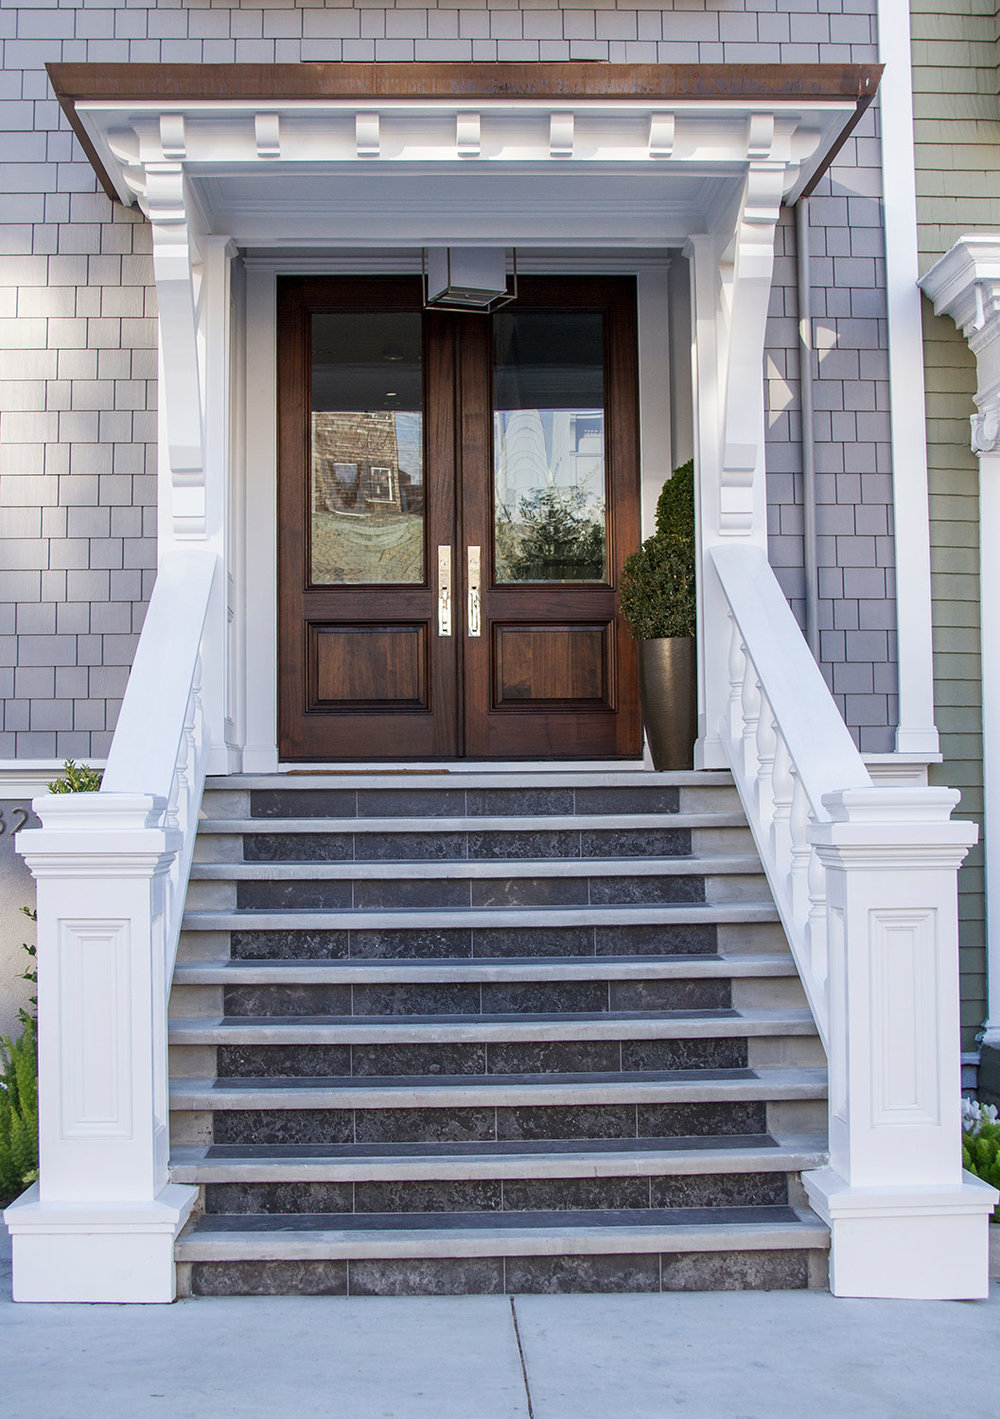 marble, steps, exterior, white, elegant, san francisco homes, front door, entryway, wood